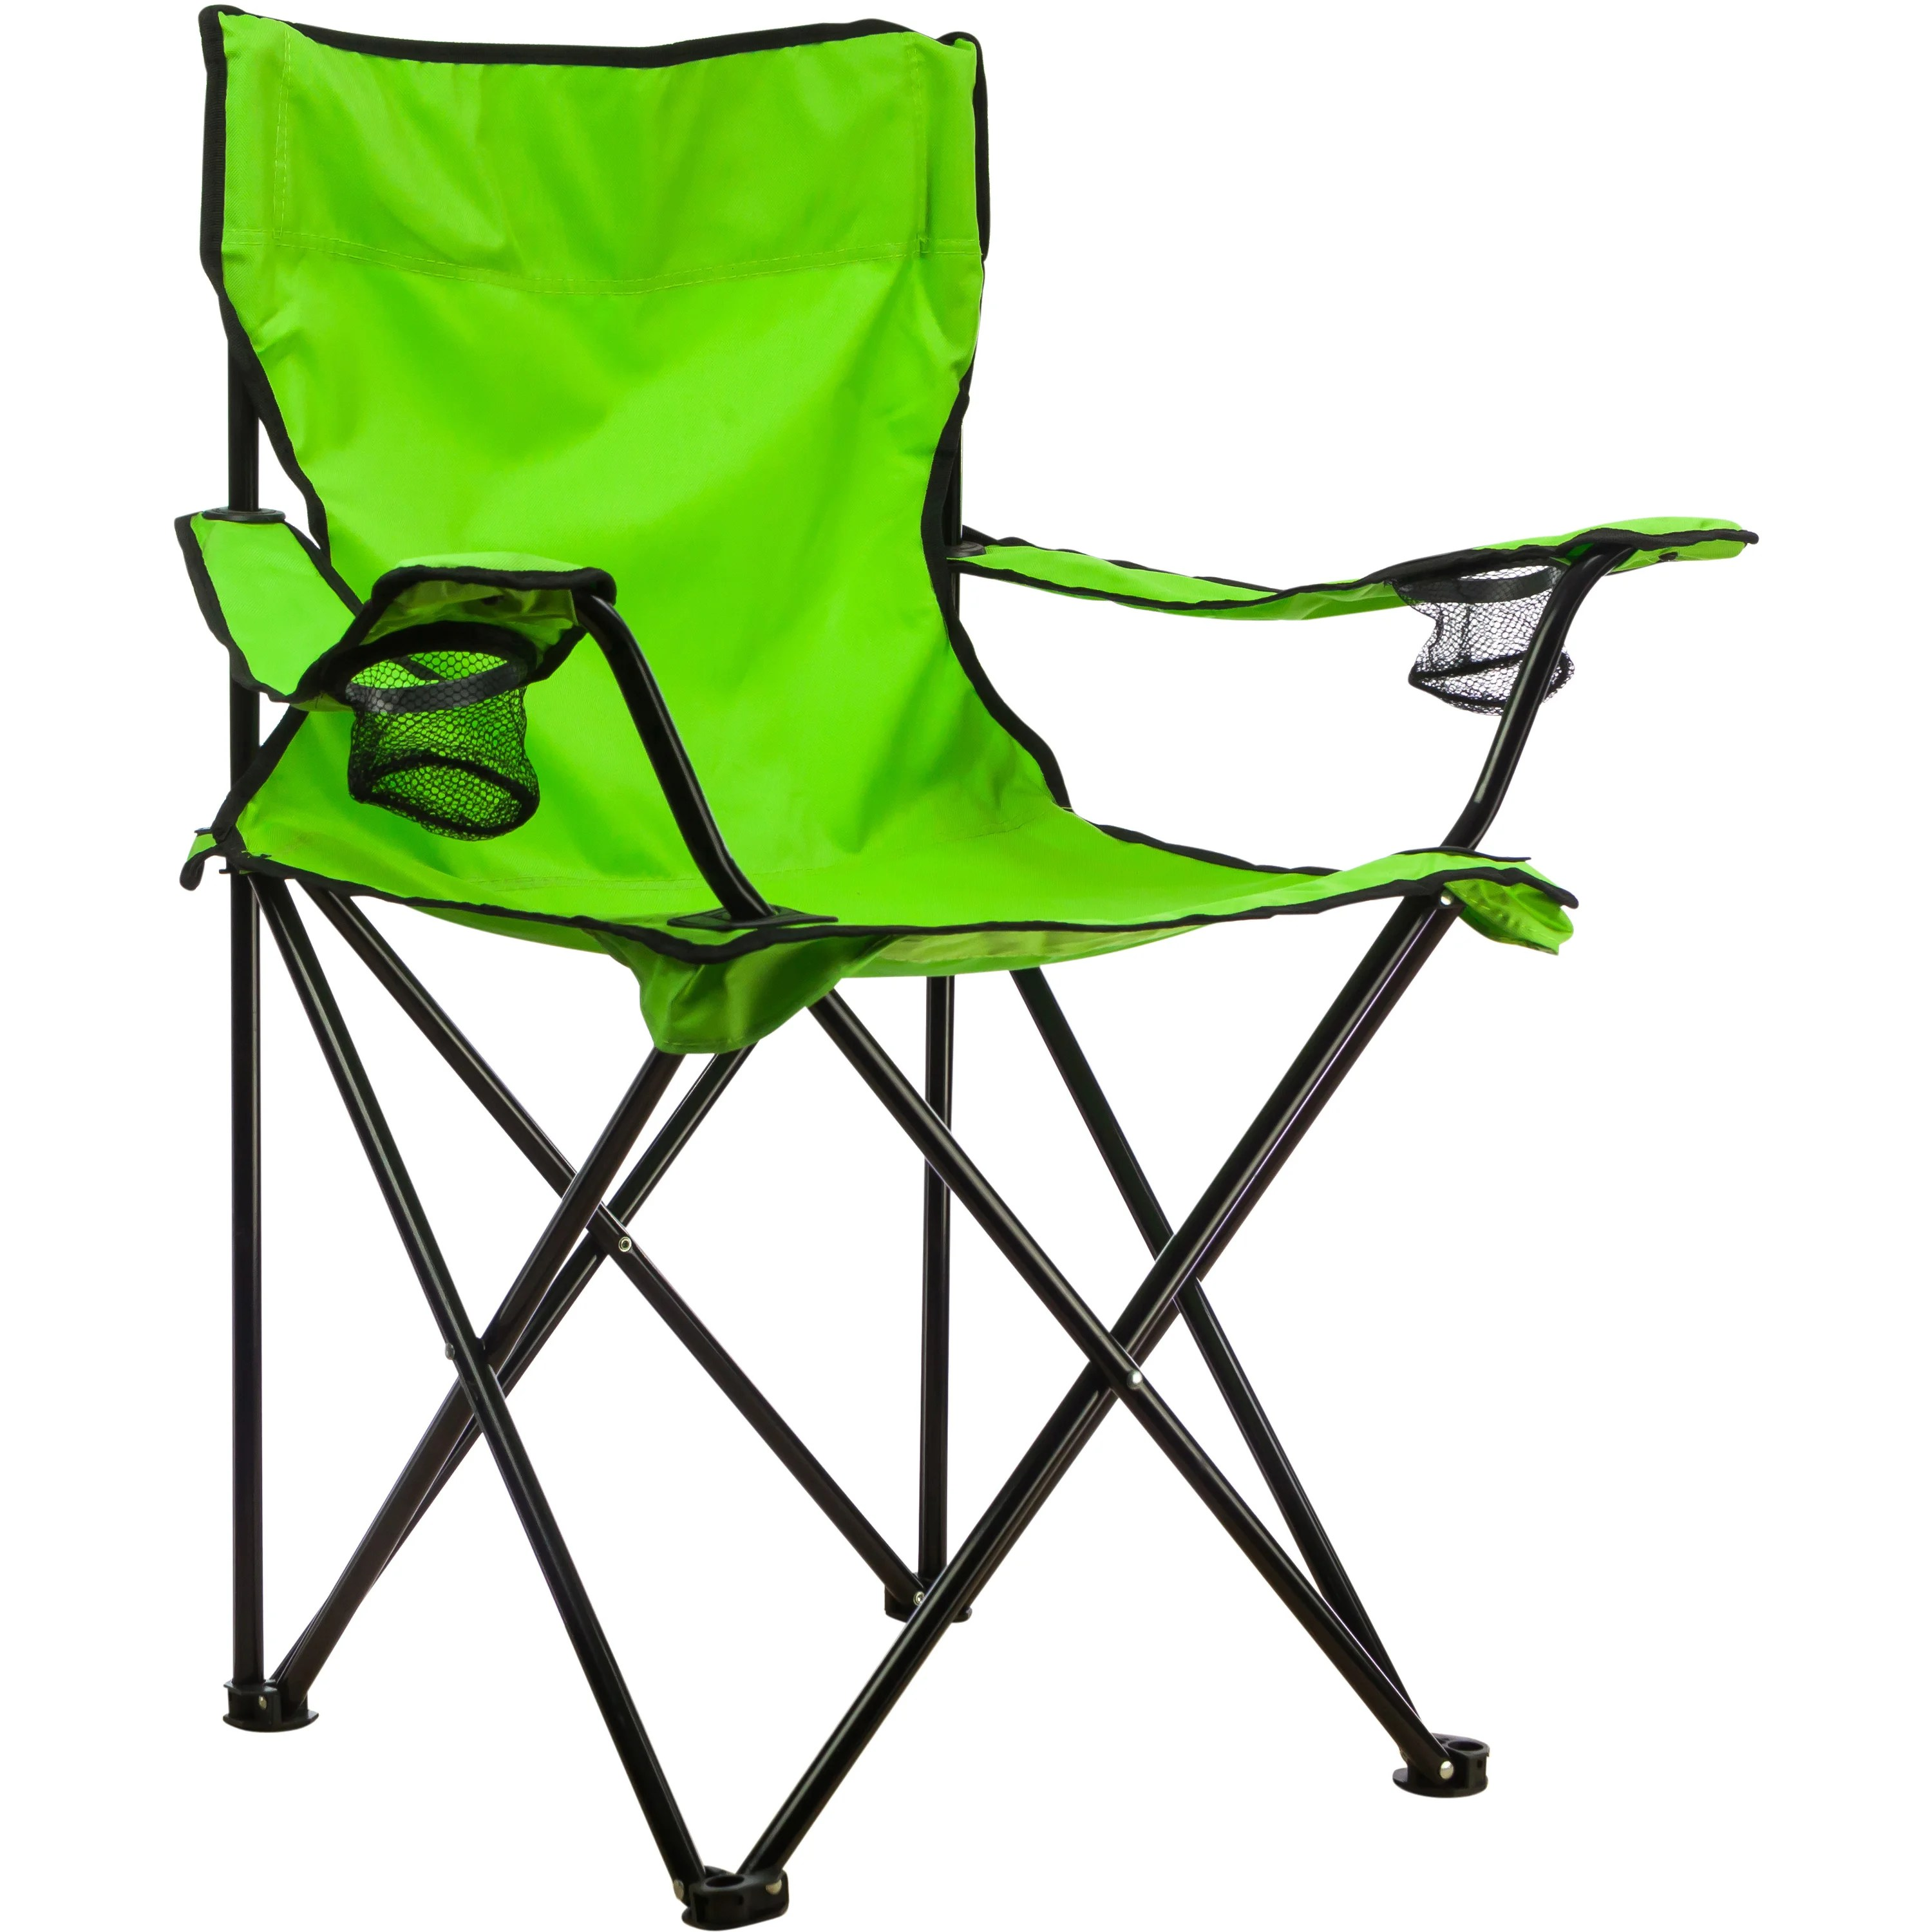 Sturdy Camping Chair Folding Chair With Carrying Bag